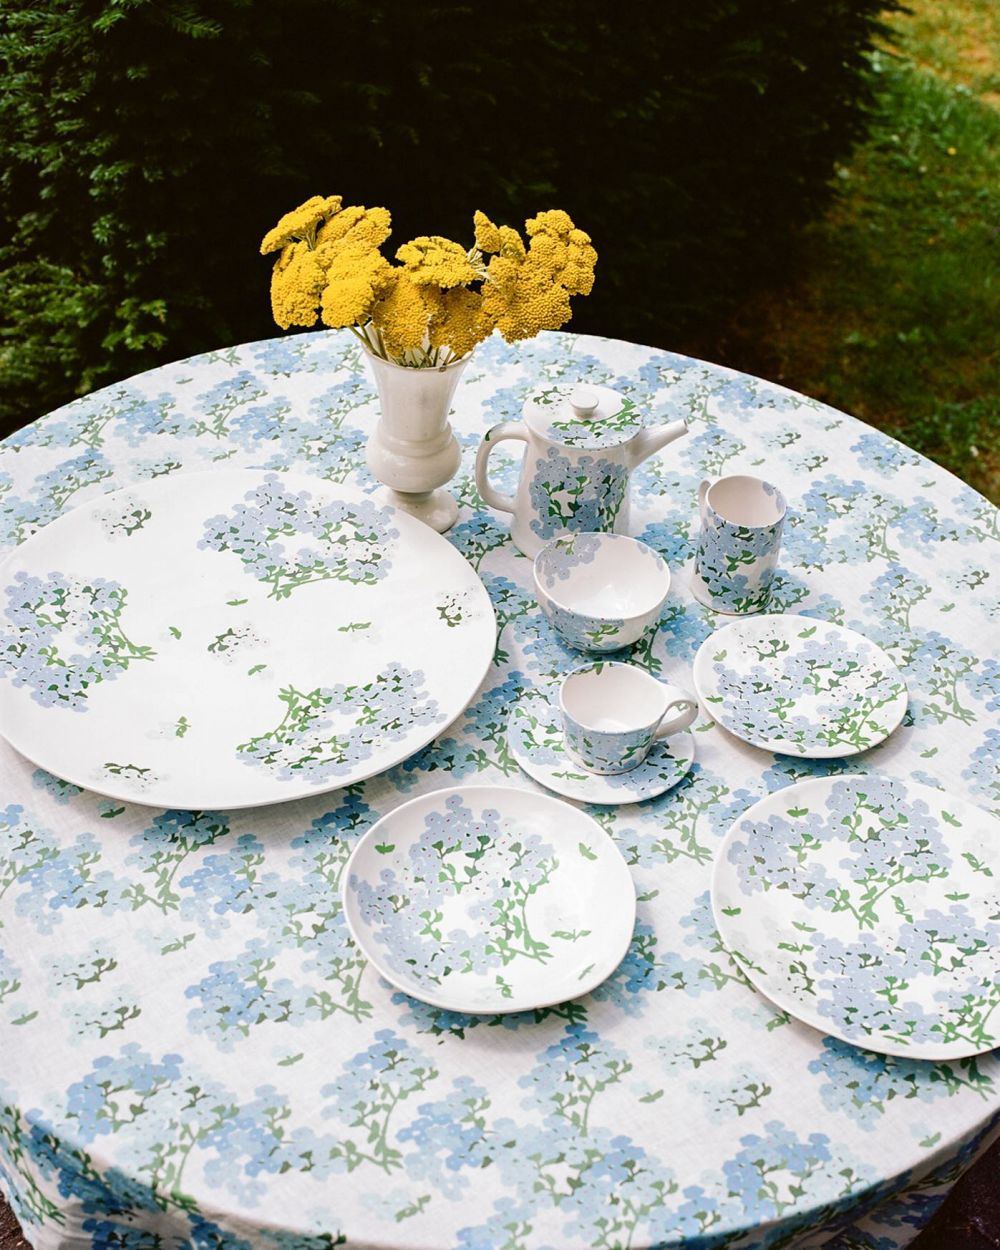 The Blue Hortensia ceramic set and tablecloth.   Now available at selected stores worldwide and on our webshop.  Shot by @evadonckers